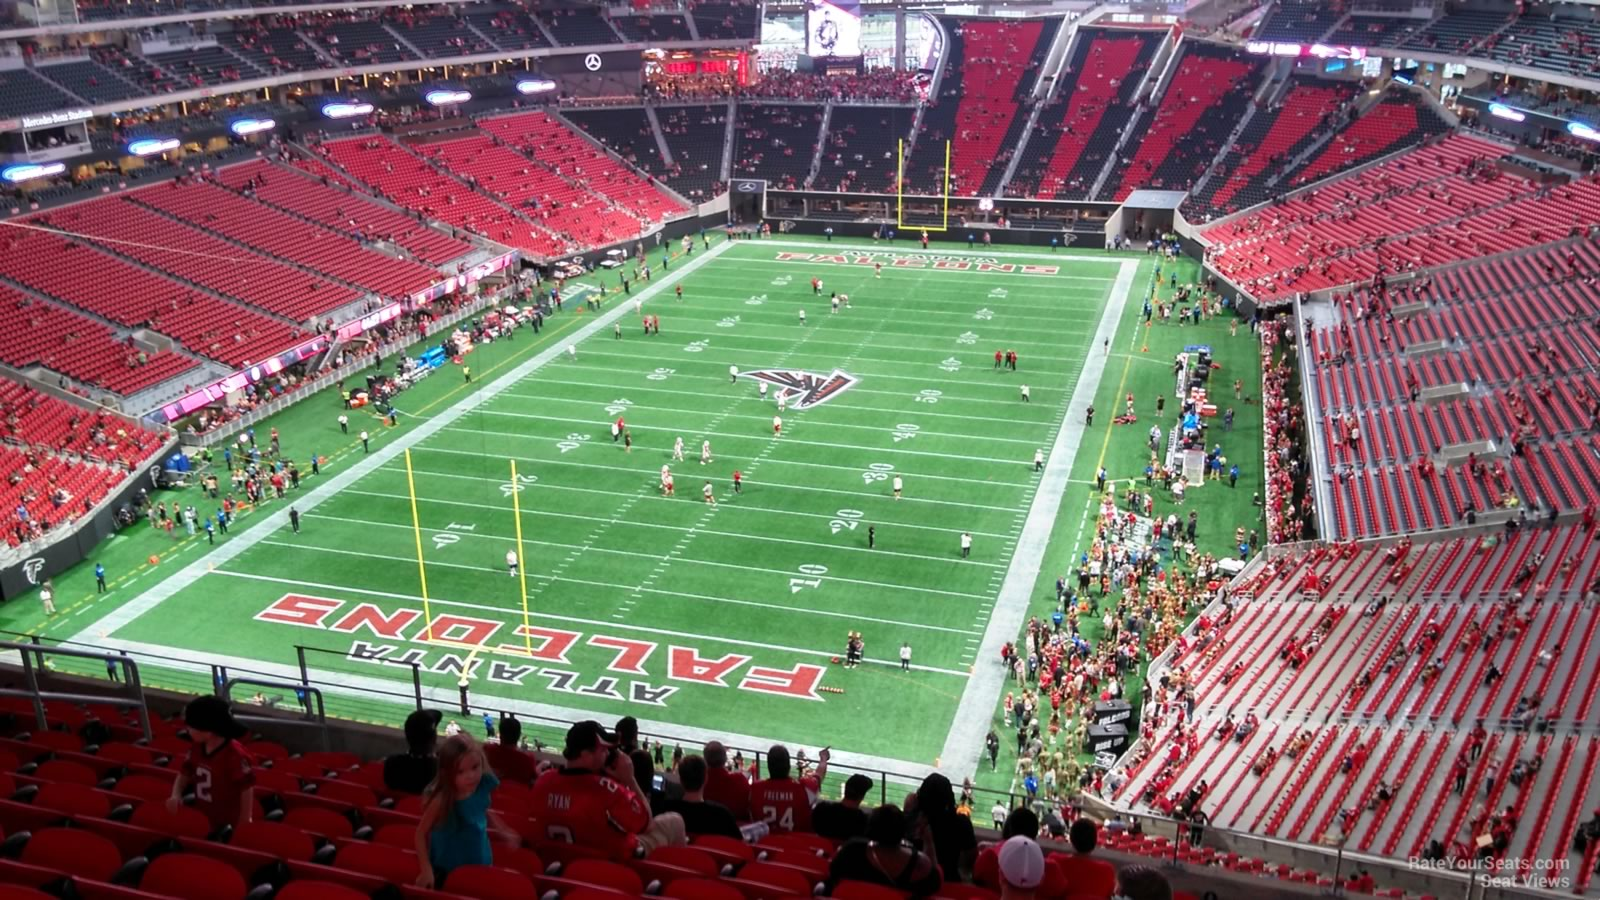 Atlanta Falcons Seat View for Mercedes-Benz Stadium Section 323, Row 12